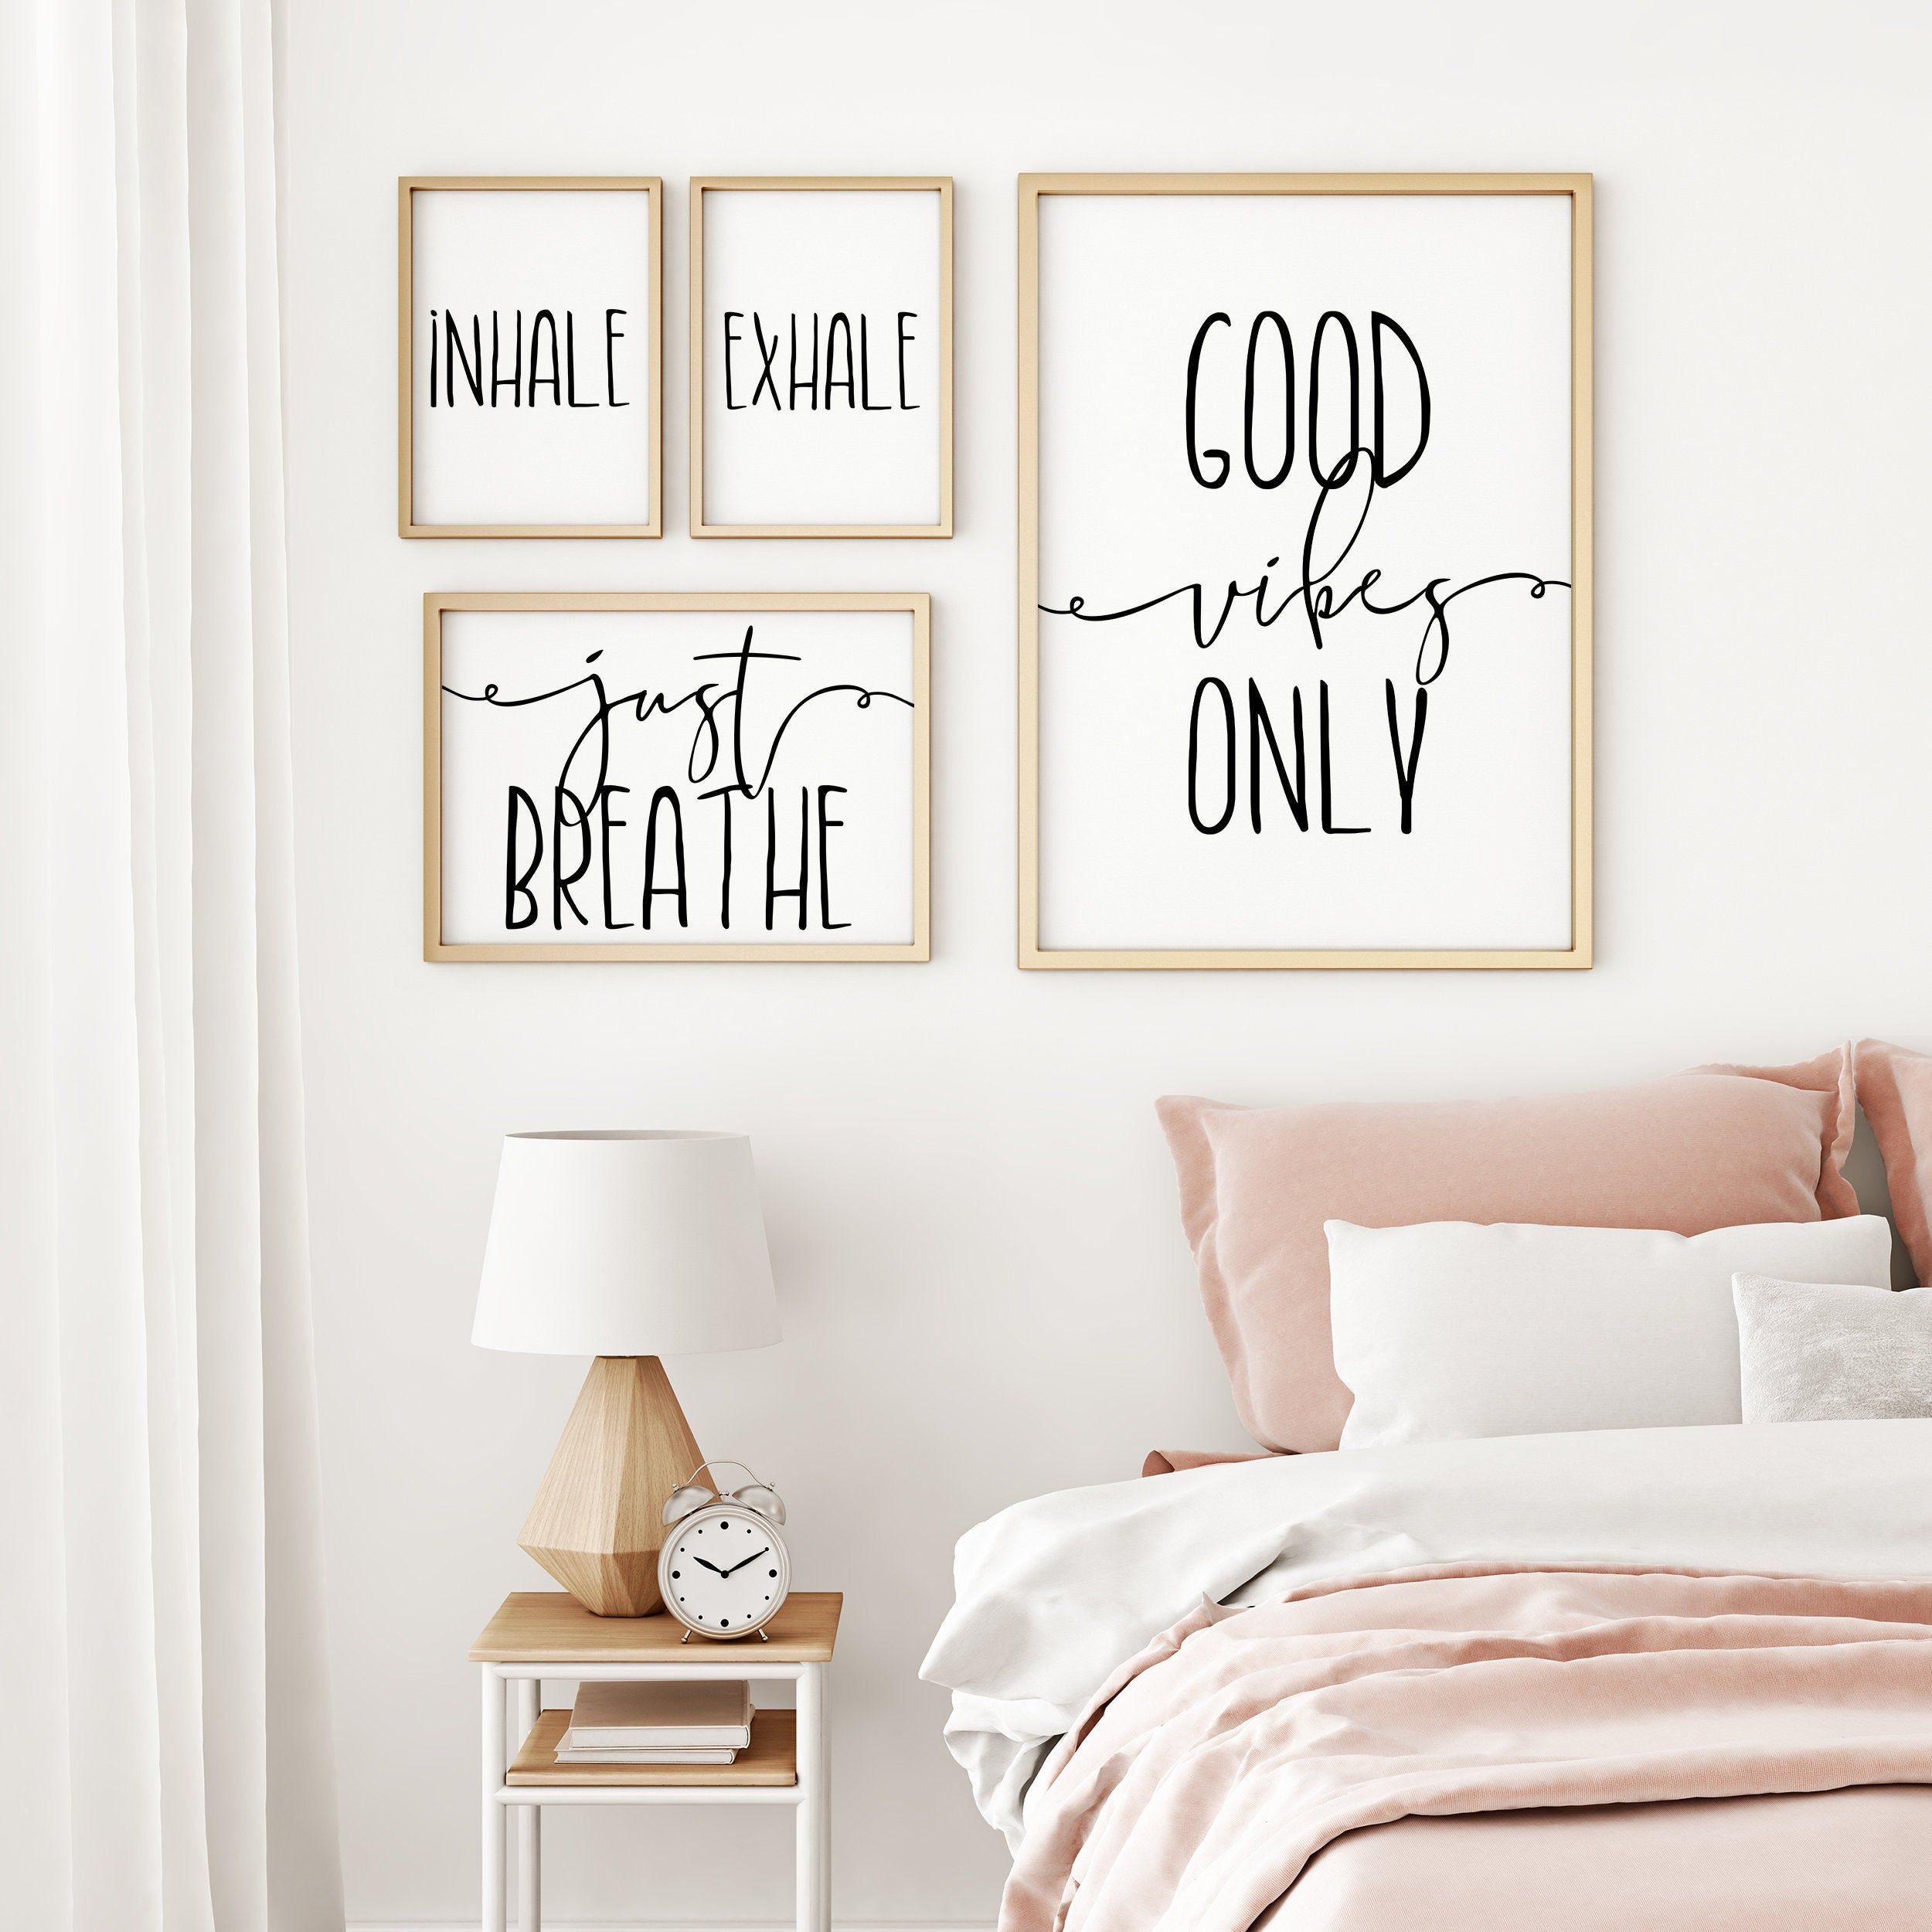 Inhale Exhale Just Breathe Good Vibes Only Motivational Wall